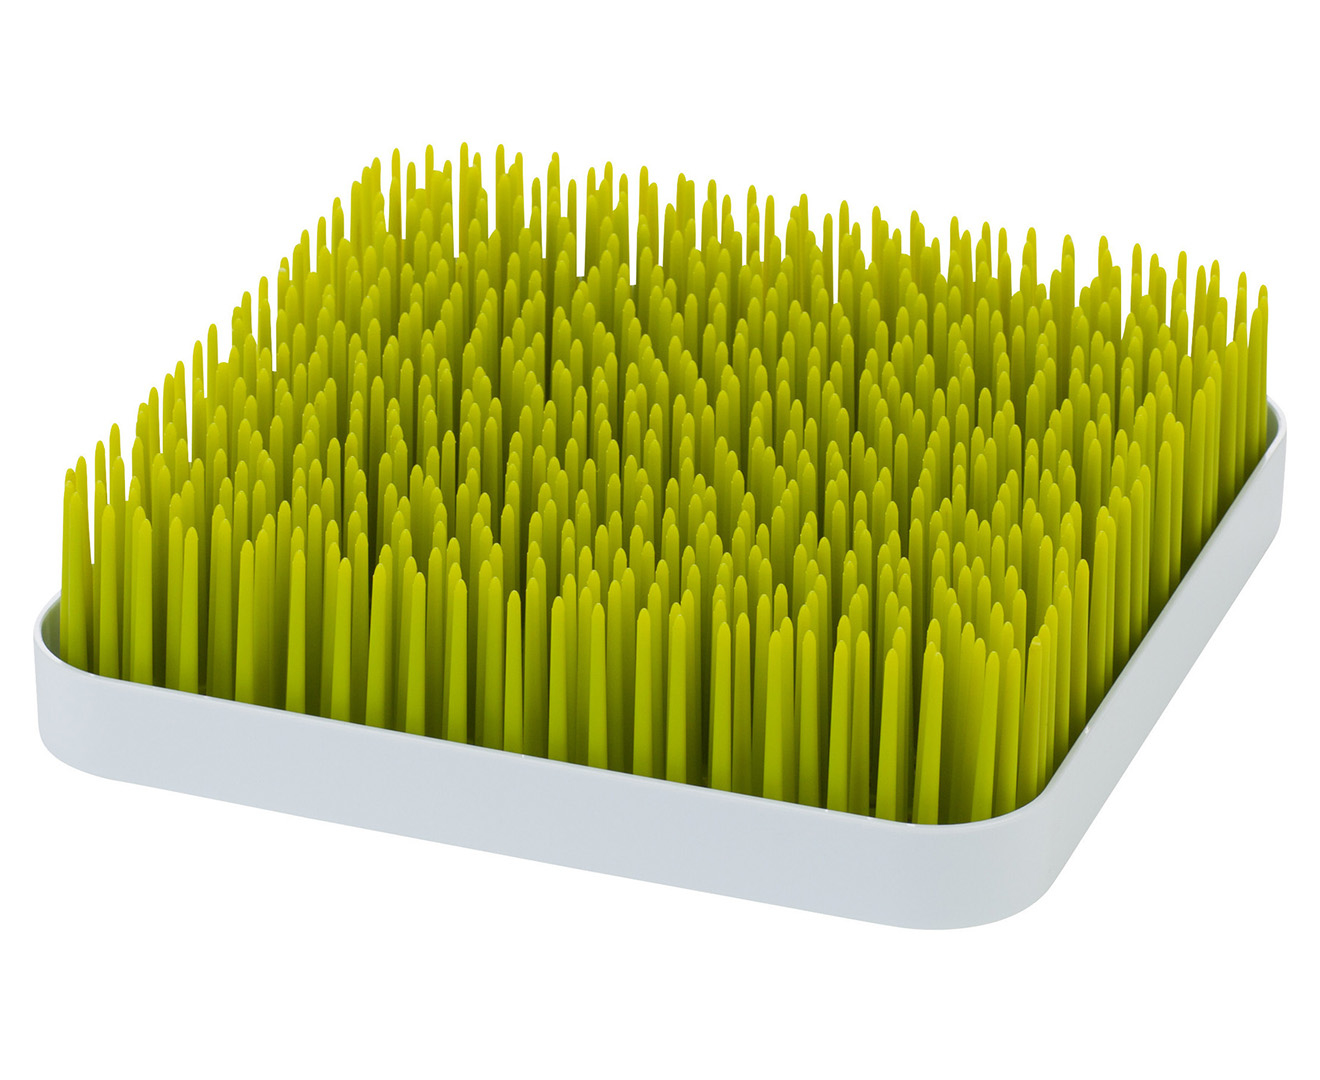 Boon Grass Countertop Drying Rack,Green 3 delivery days